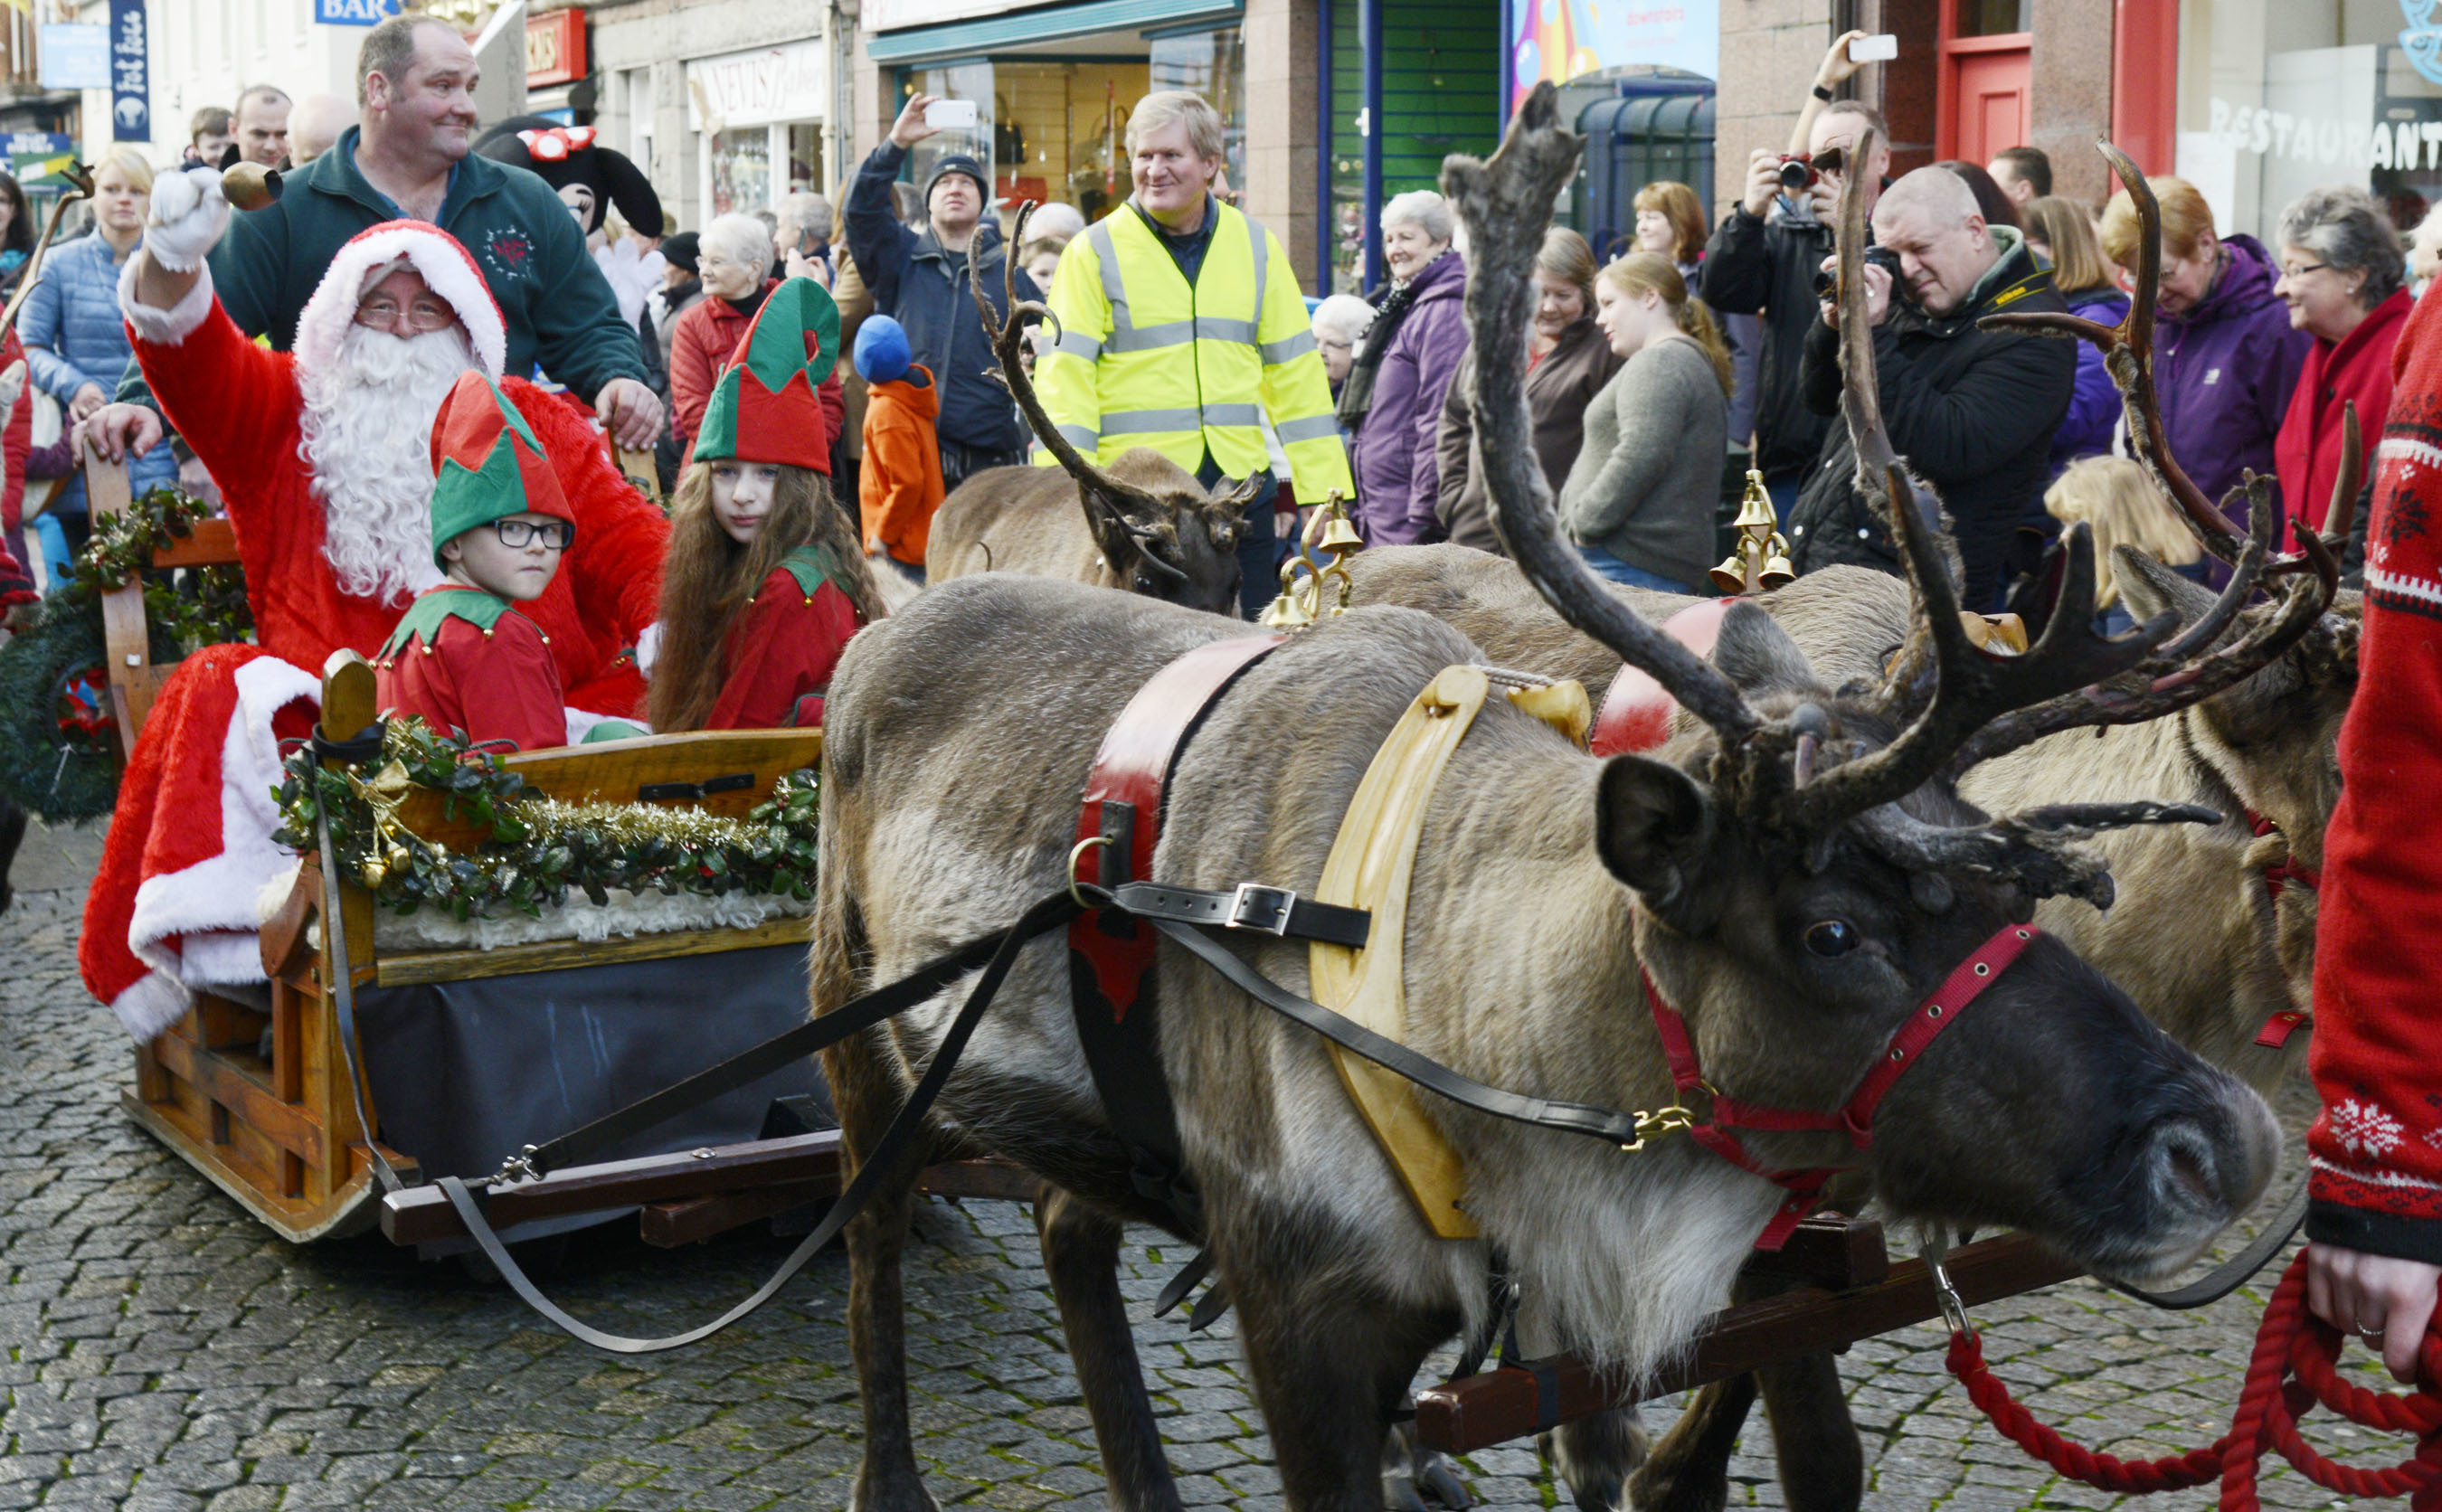 Santa and his reindeer delight the crowds in Fort William High Street